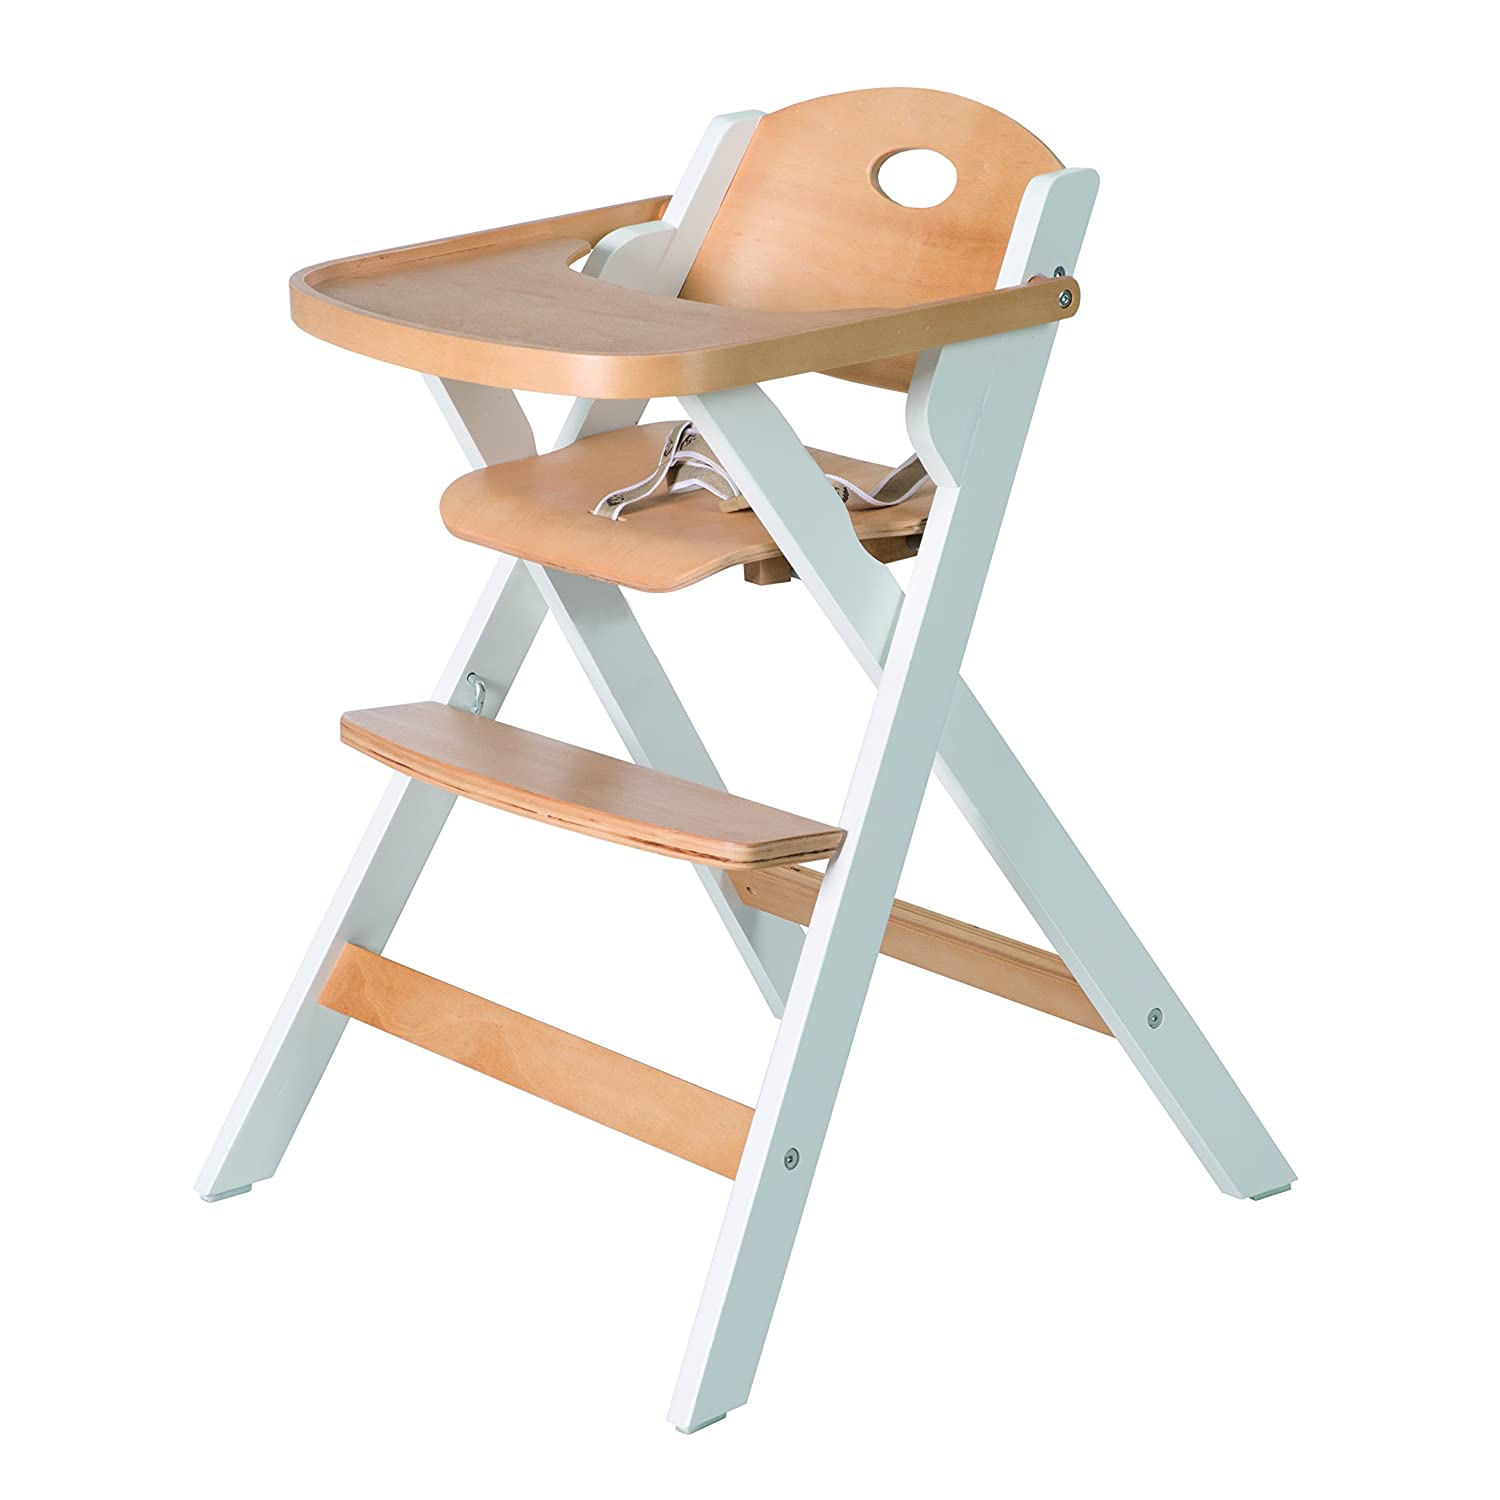 Space Saving Folding Highchair for Baby and Toddler Chair in Natural Wood and White Folding Highchair Stole